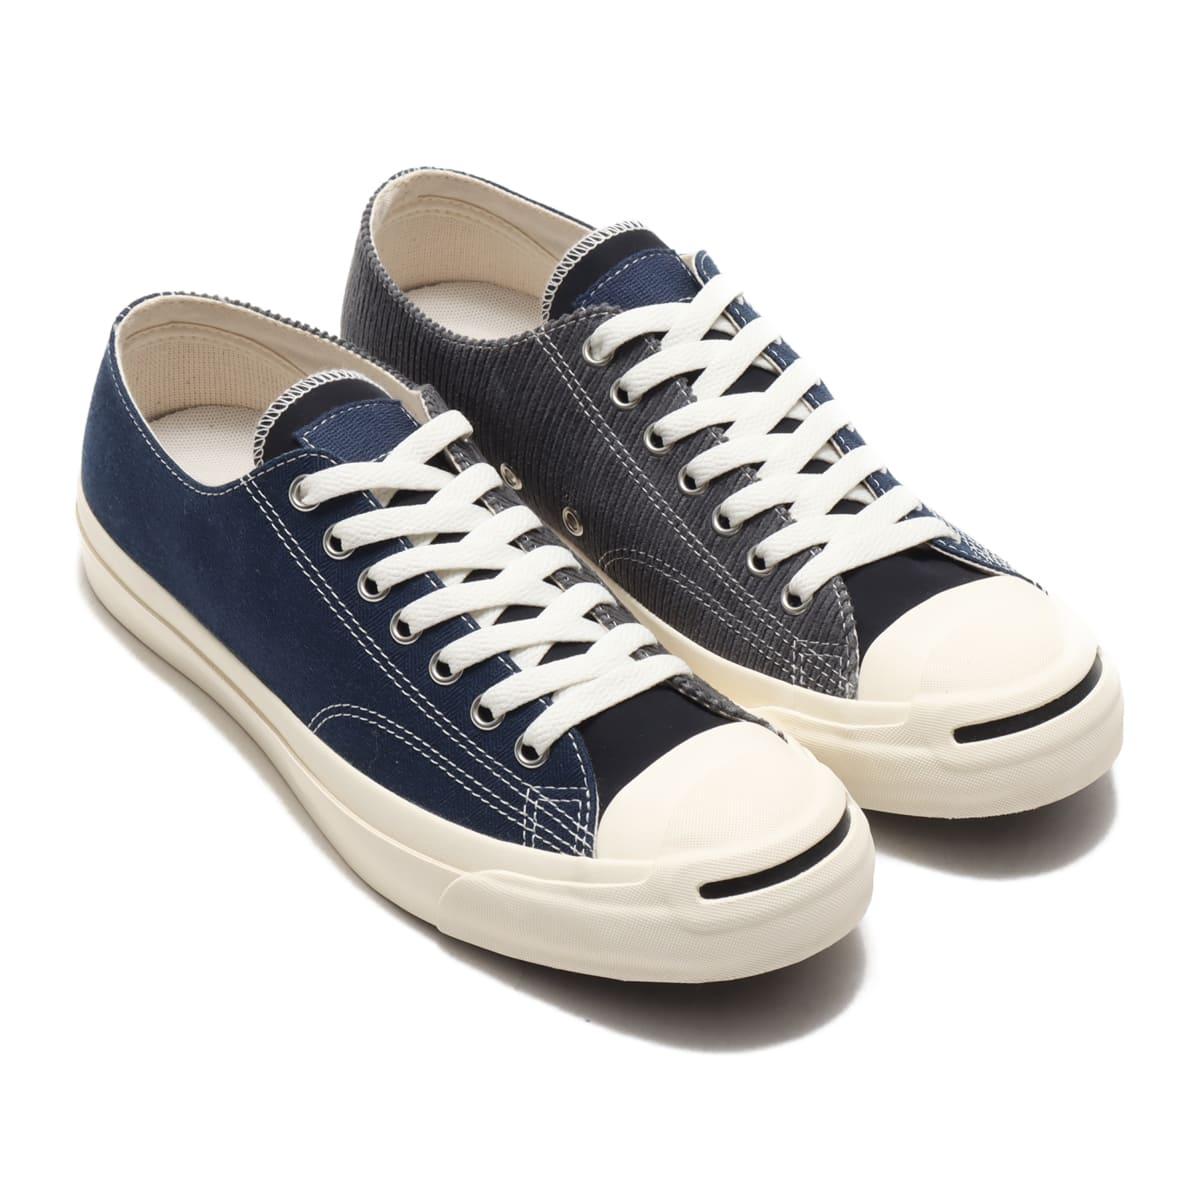 CONVERSE JACK PURCELL MULTIMATERIAL RH NAVY 20FW-I_photo_large